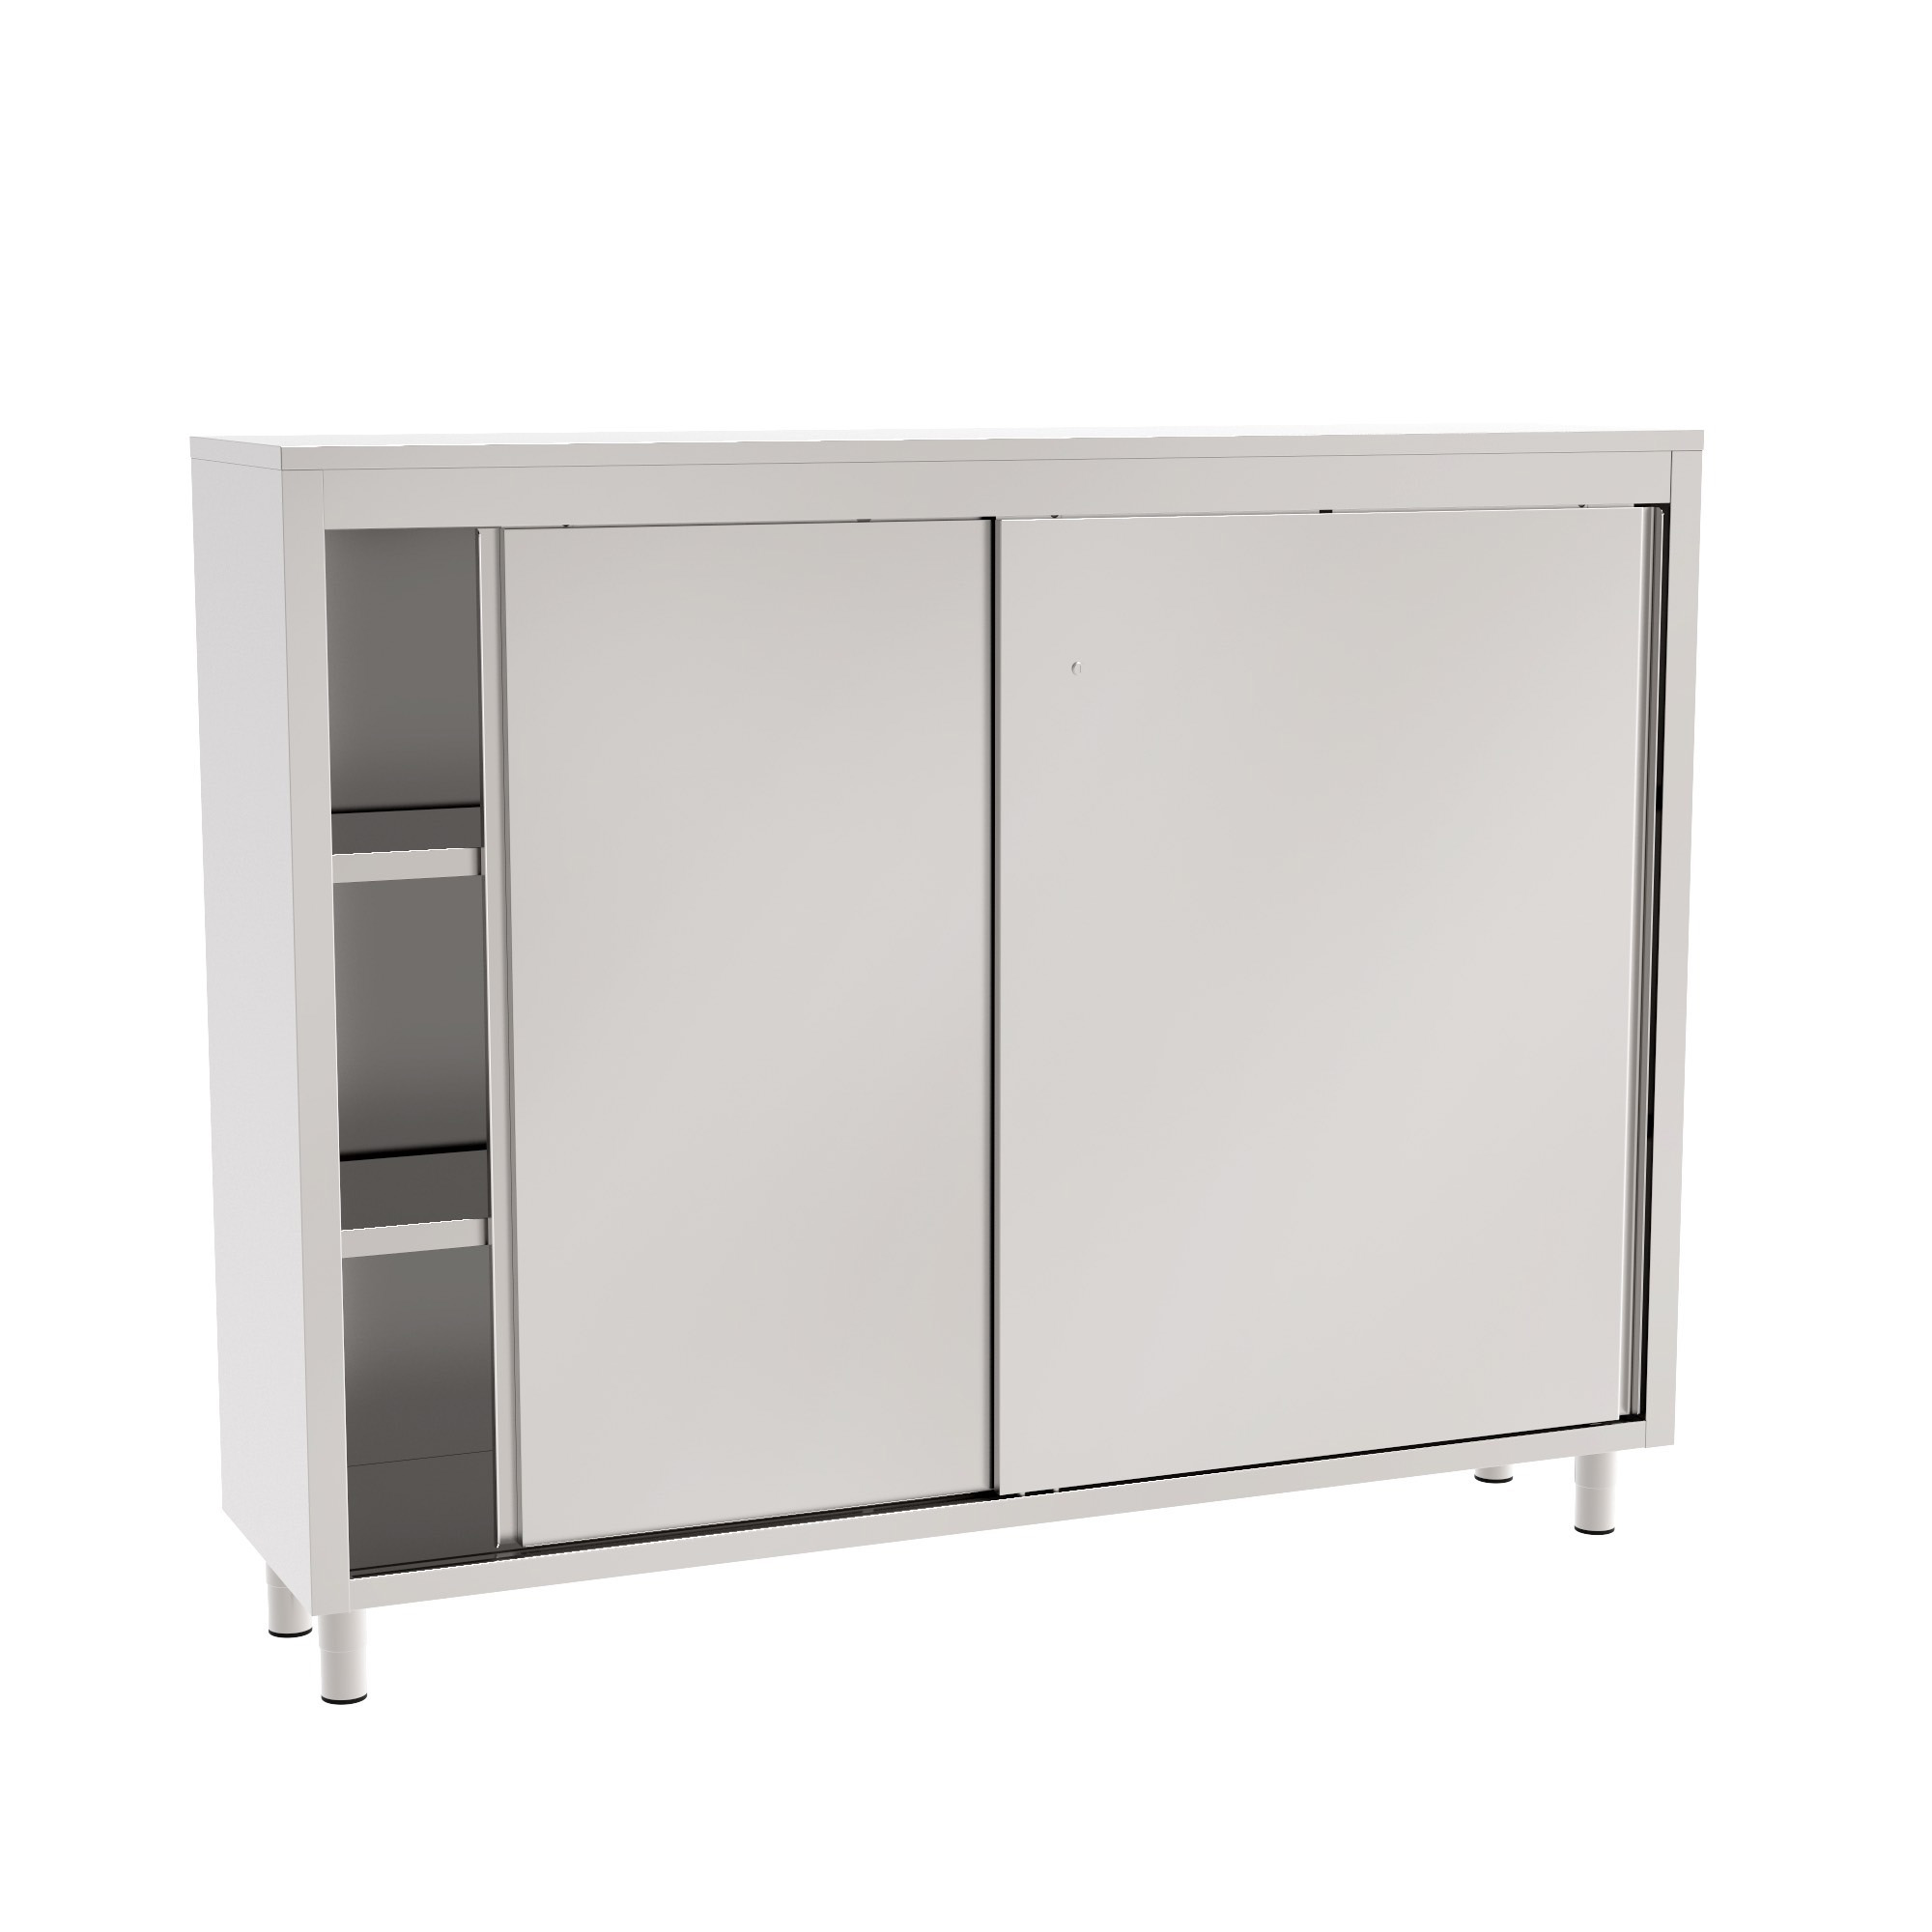 Storage Cabinet With Sliding Doors And Plain Shelves Cleanroom